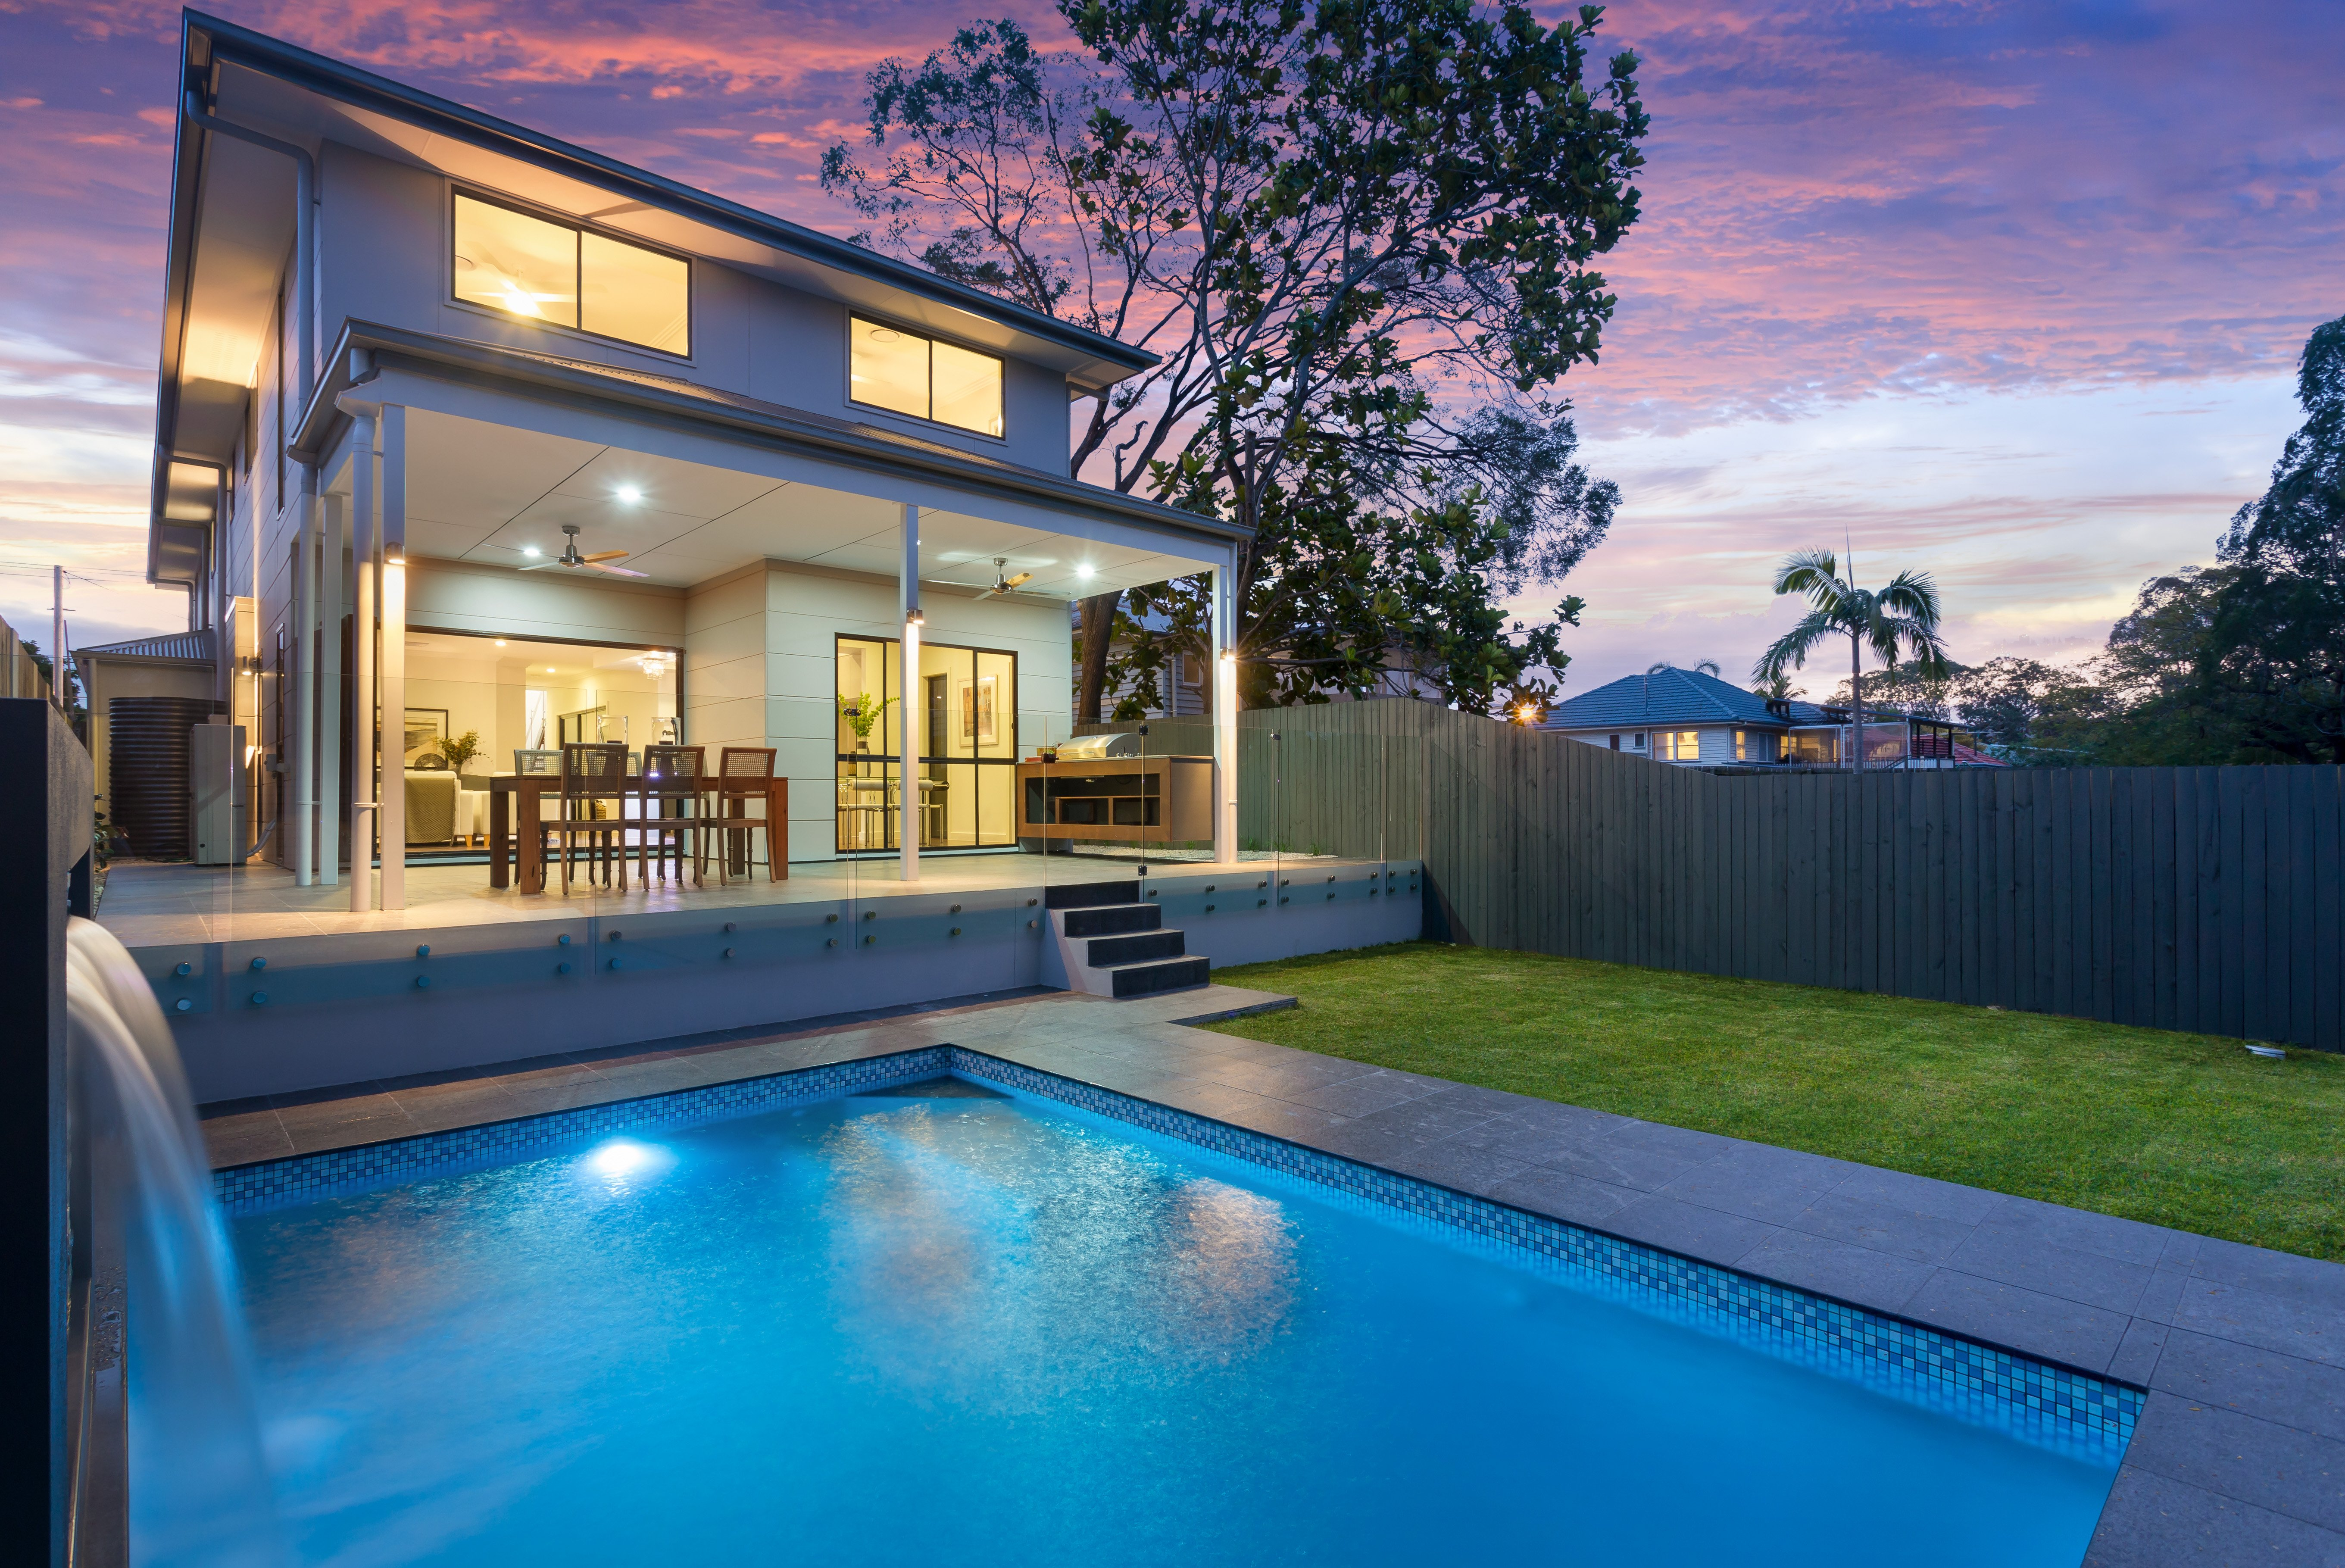 198 Oxley Road, Graceville pool